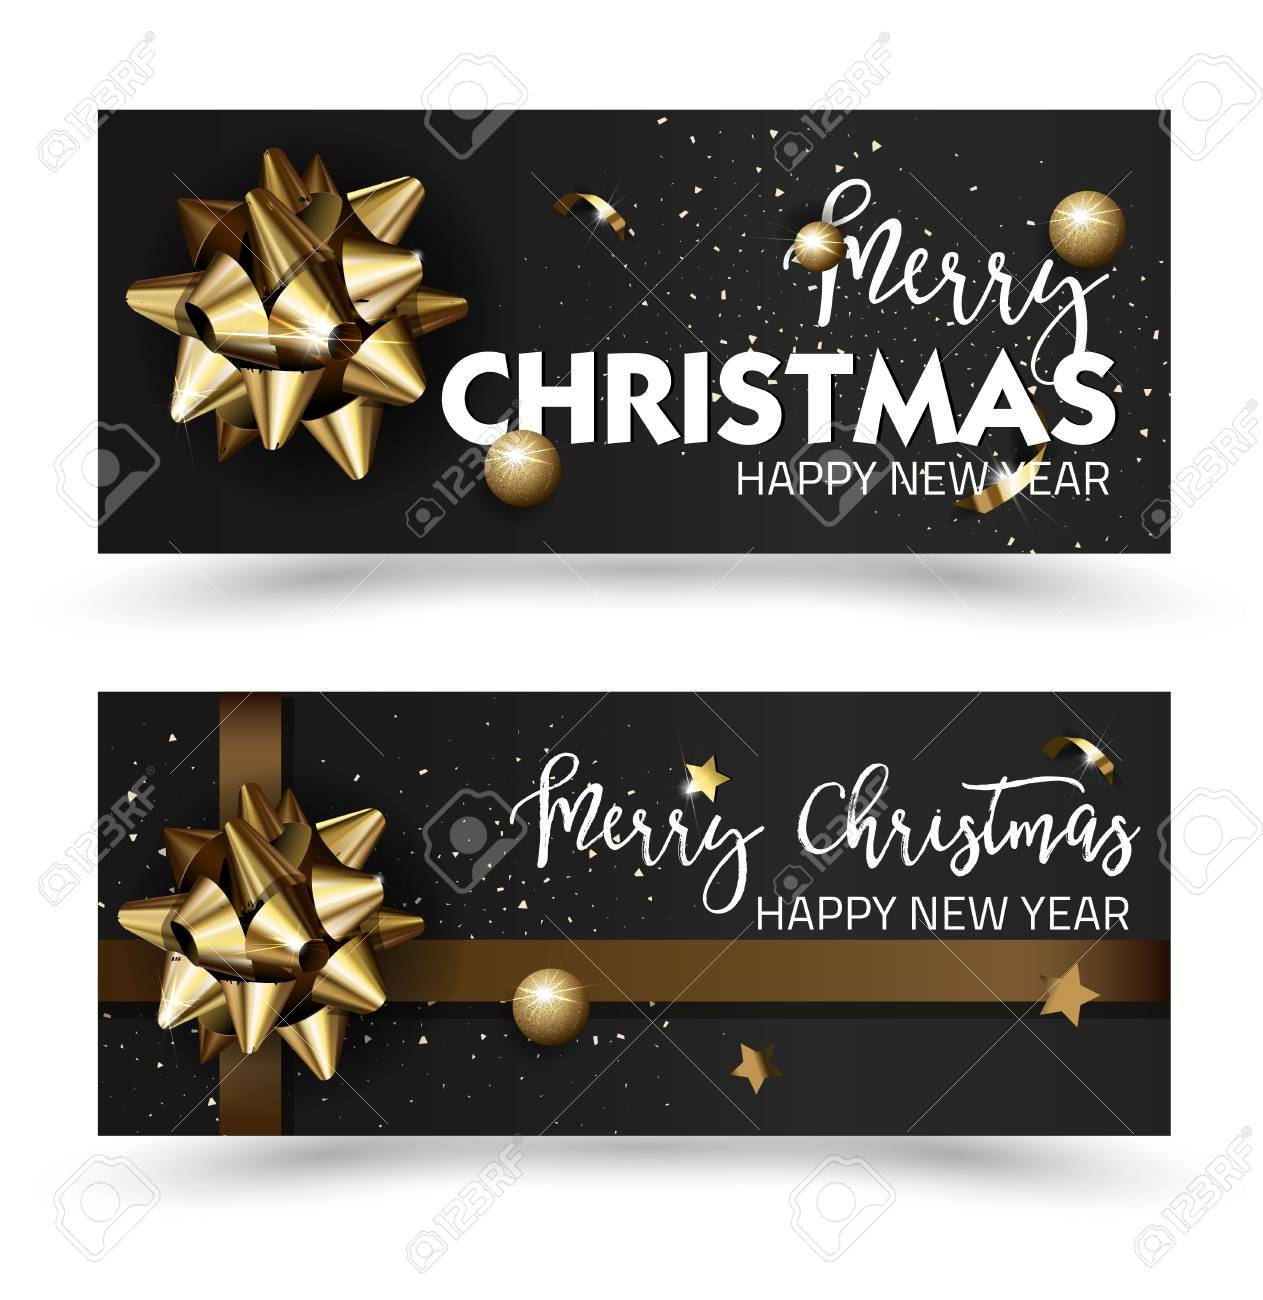 merry christmas or happy new year web banner design template greeting cards with golden bows